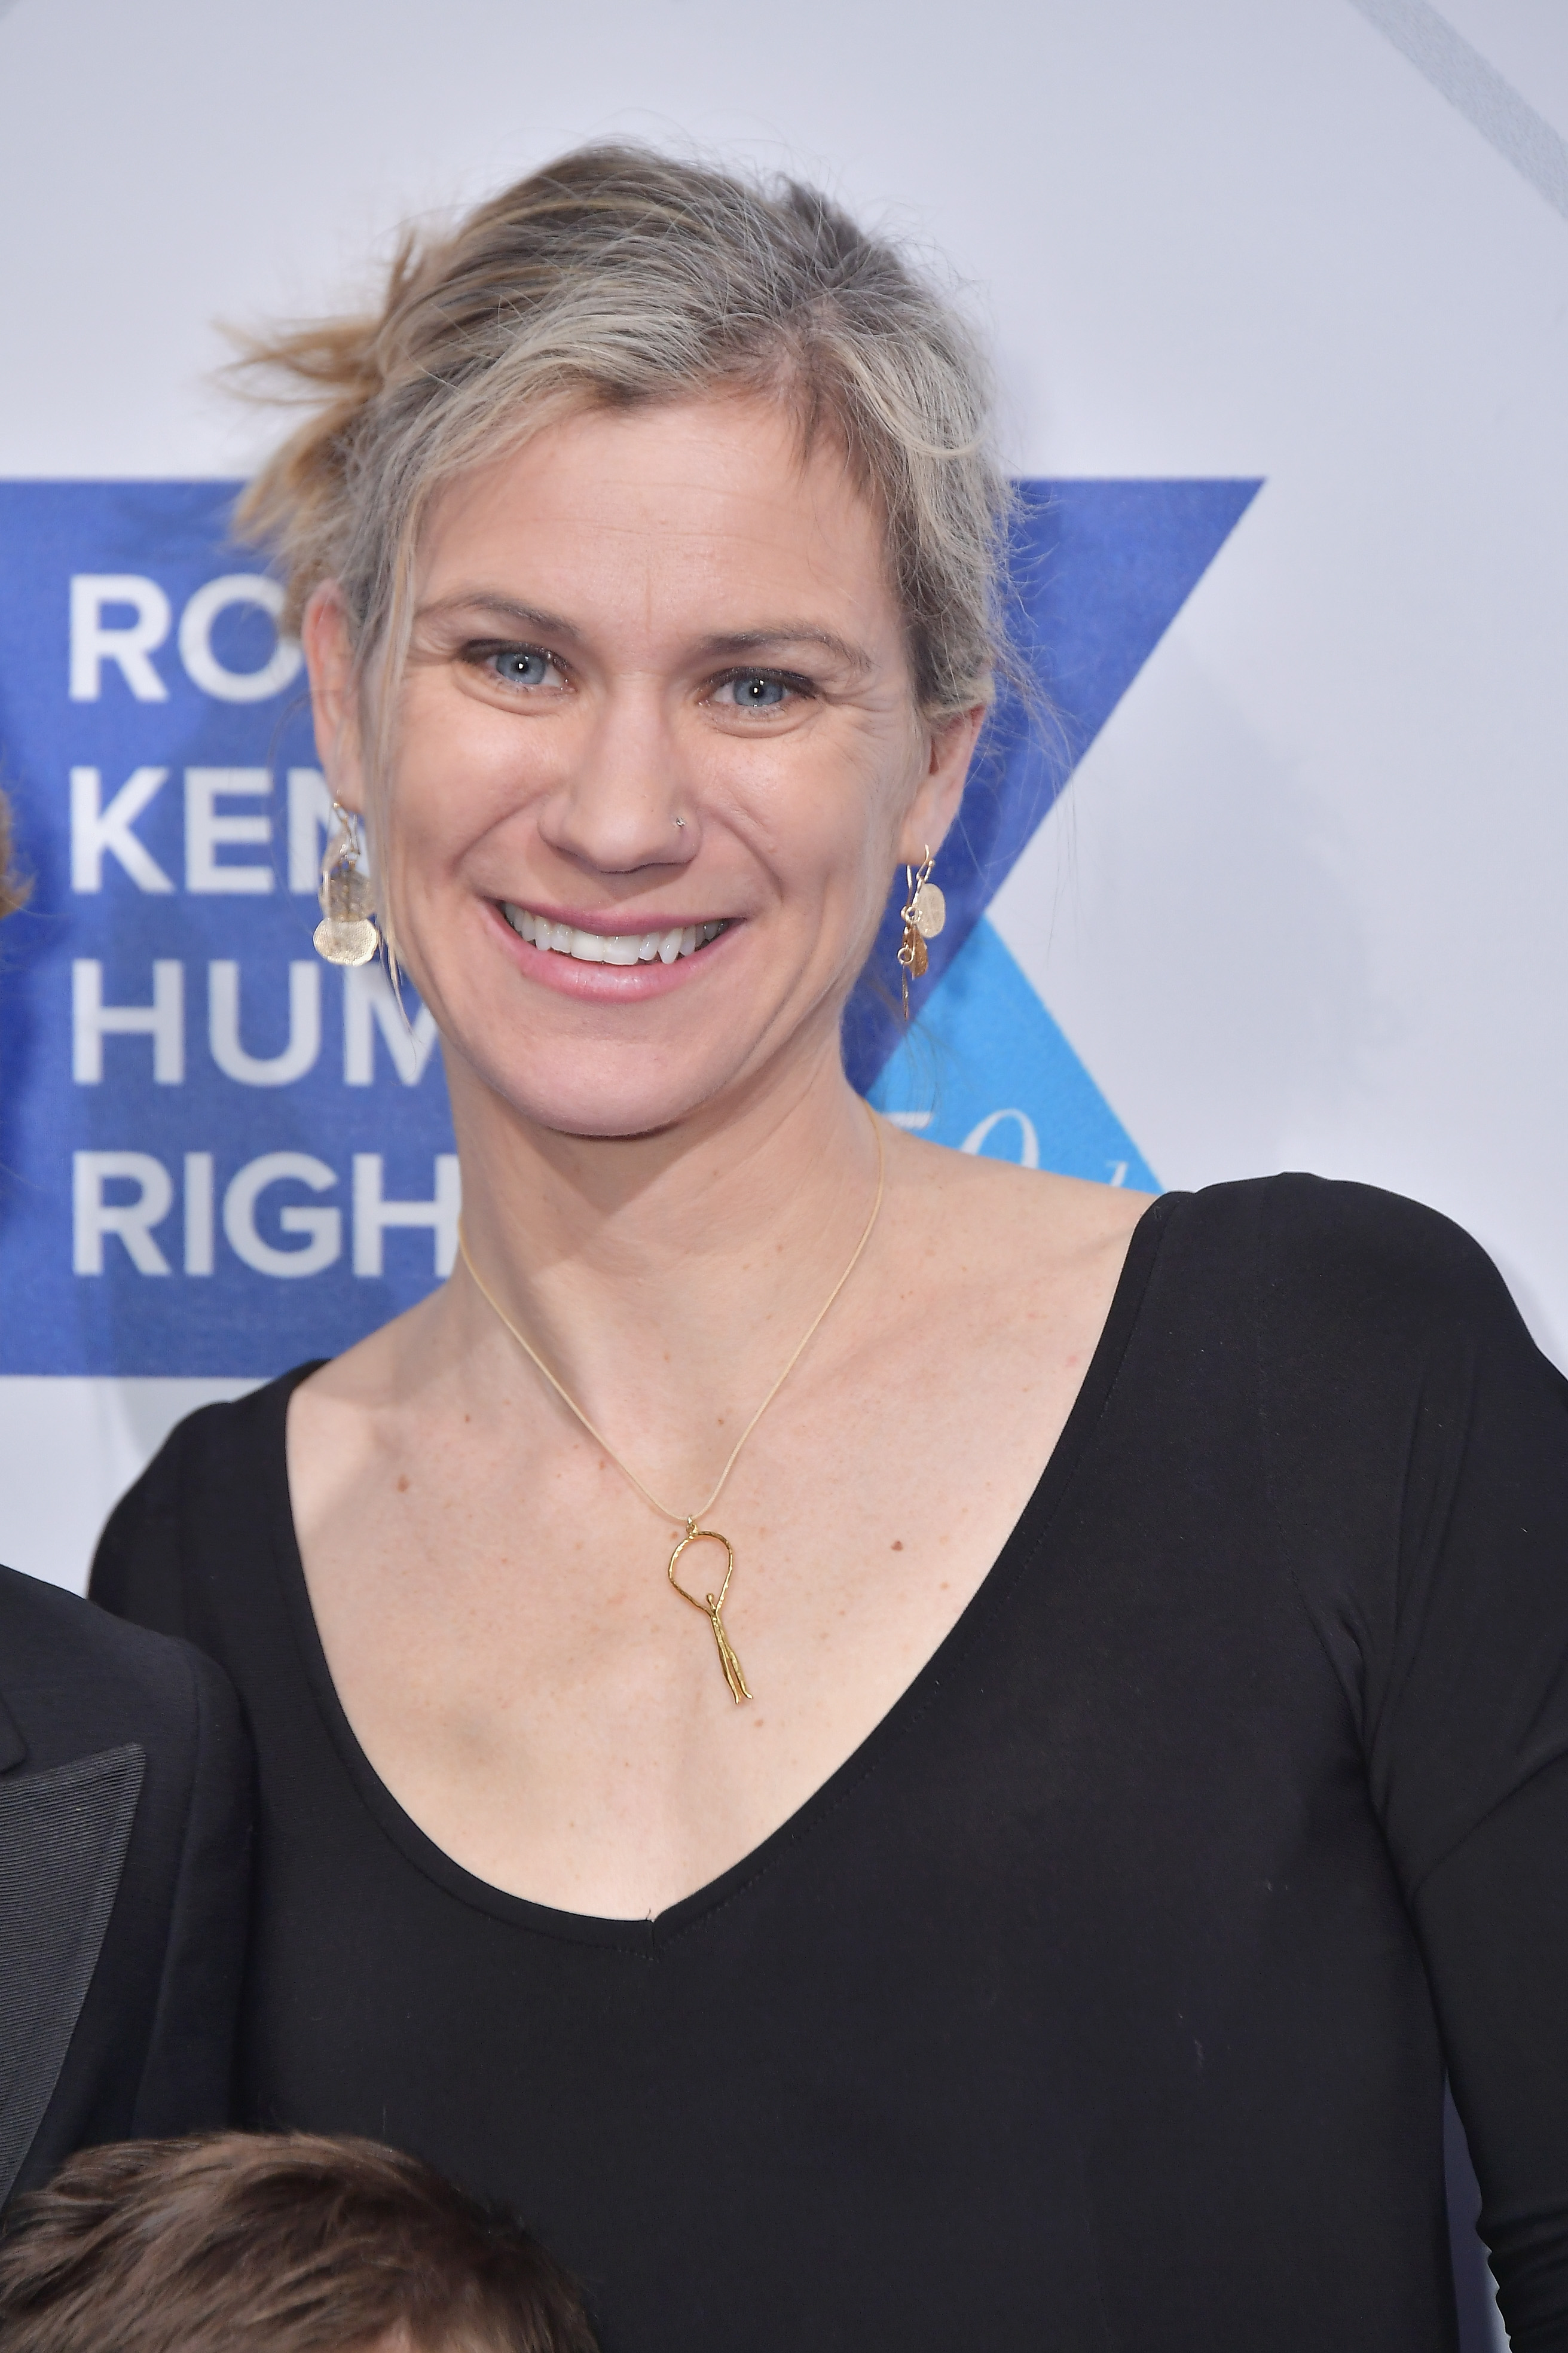 Maeve McKean attends the 2019 Robert F. Kennedy Human Rights Ripple Of Hope Awards on December 12, 2018 in New York City. (Photo by Michael Loccisano/Getty Images for Robert F. Kennedy Human Rights )